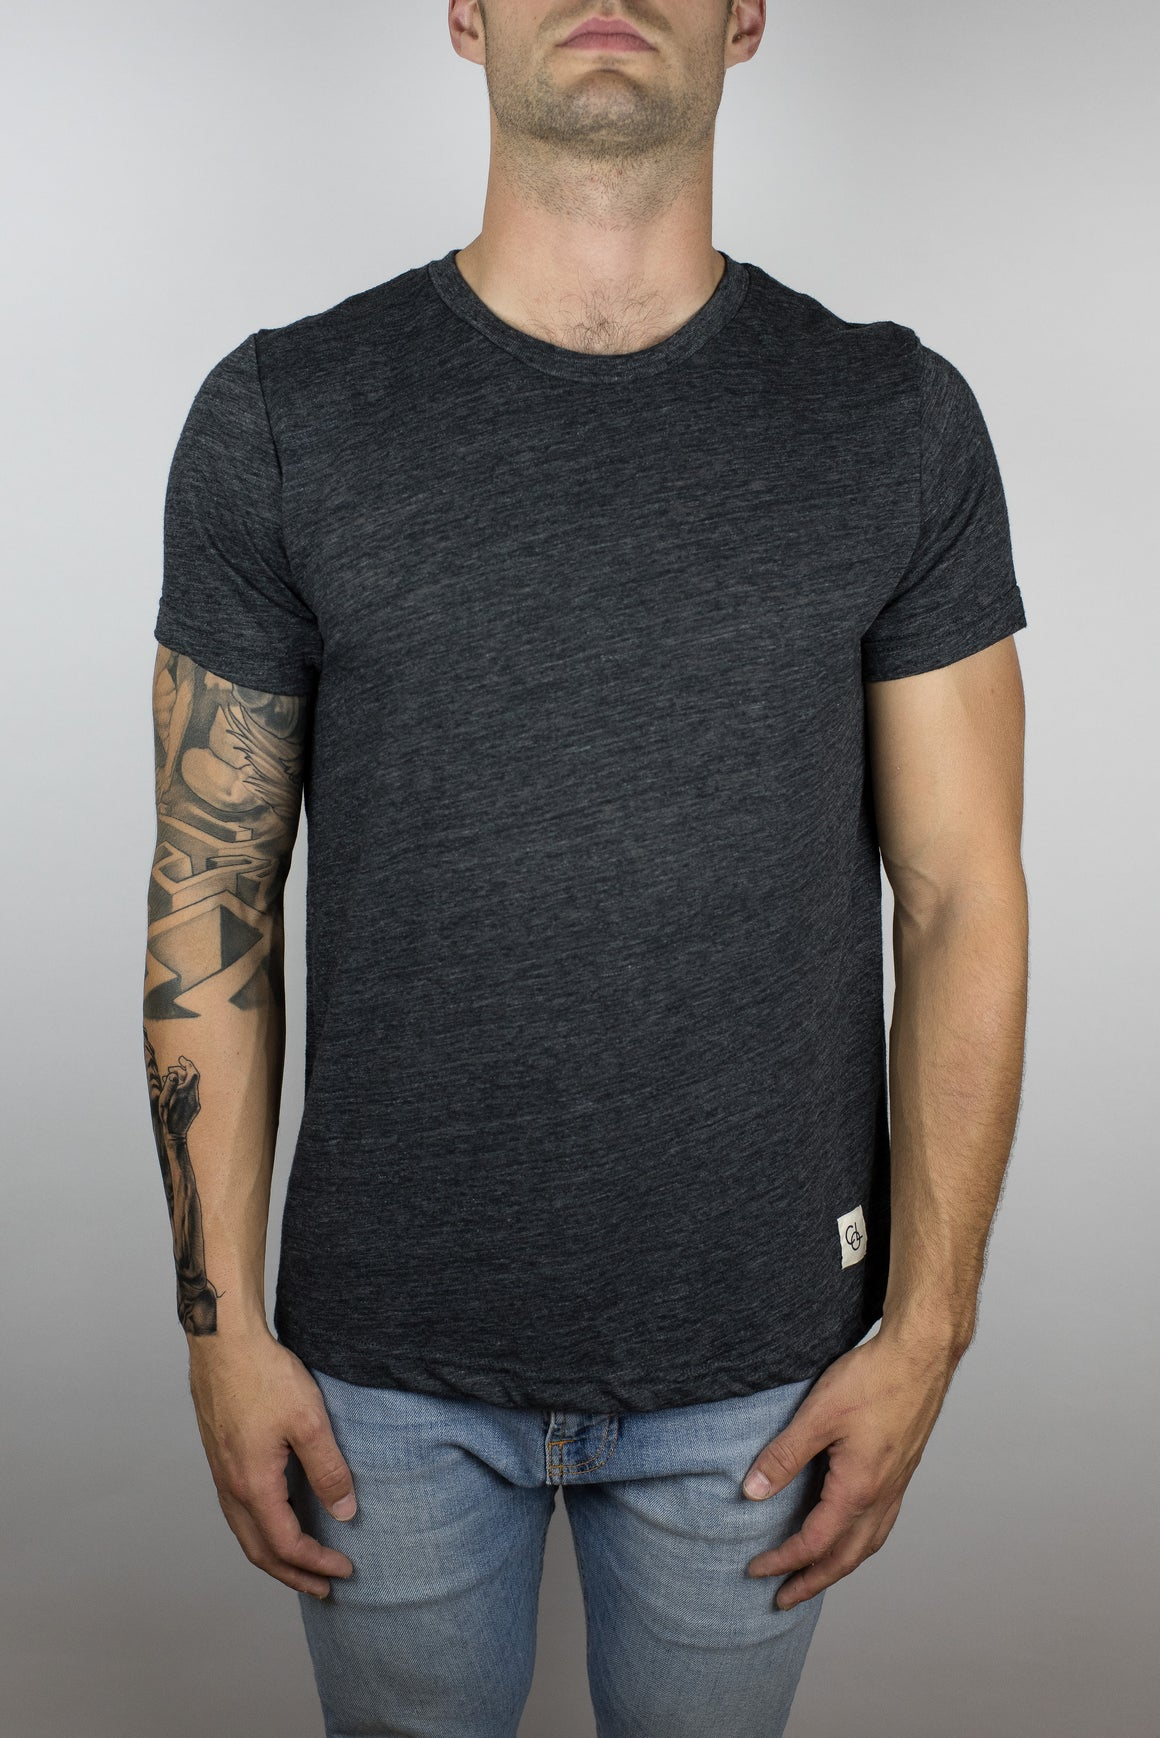 The Trigger Slub Tee in Charcoal